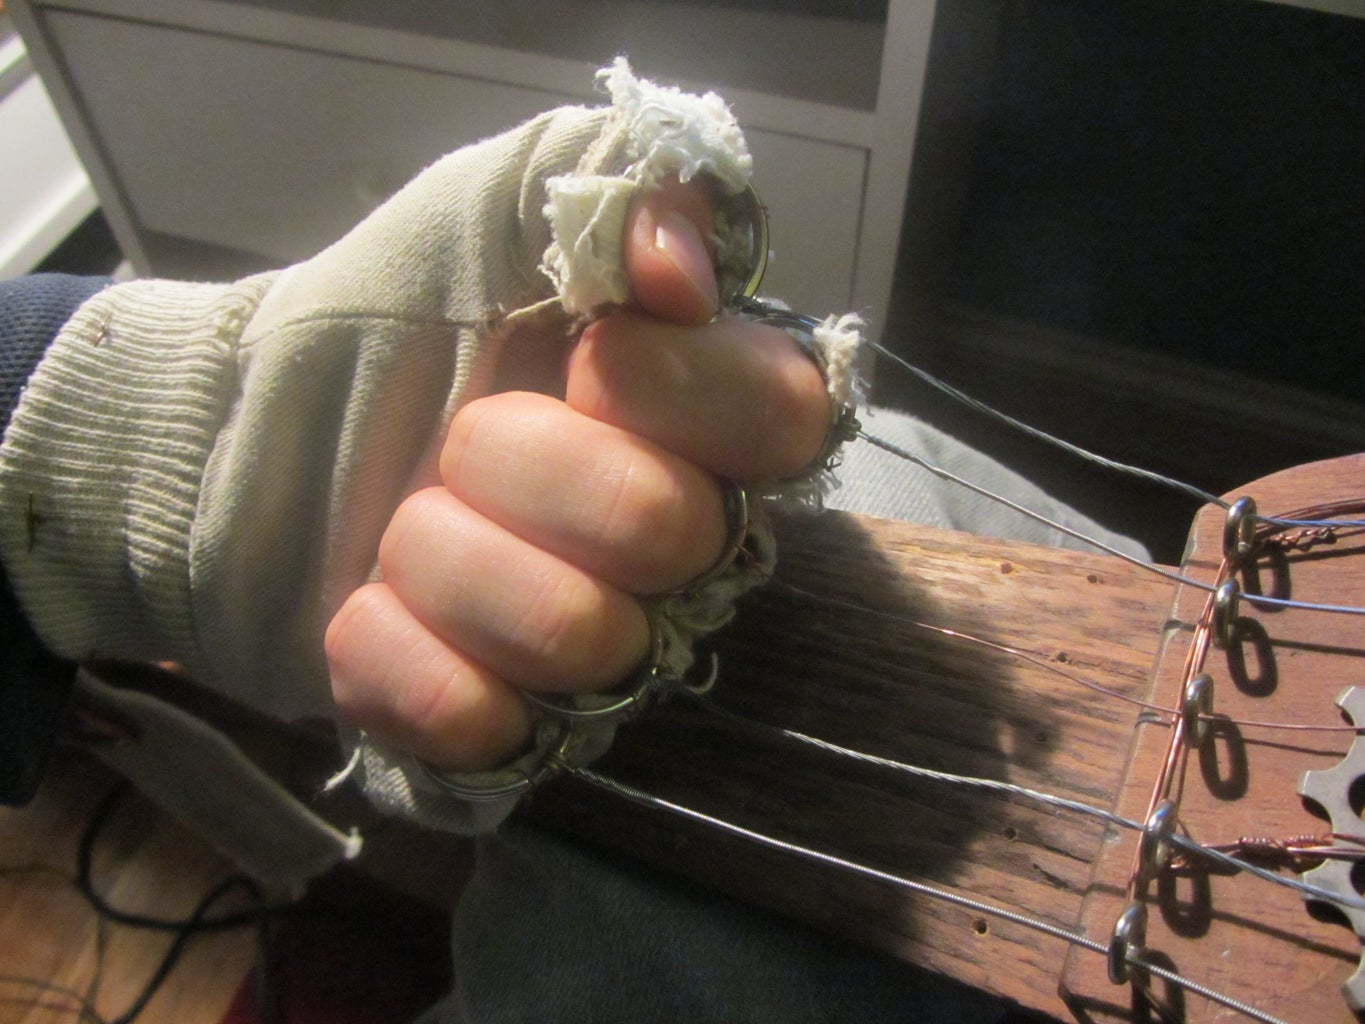 The Glove and Wiring